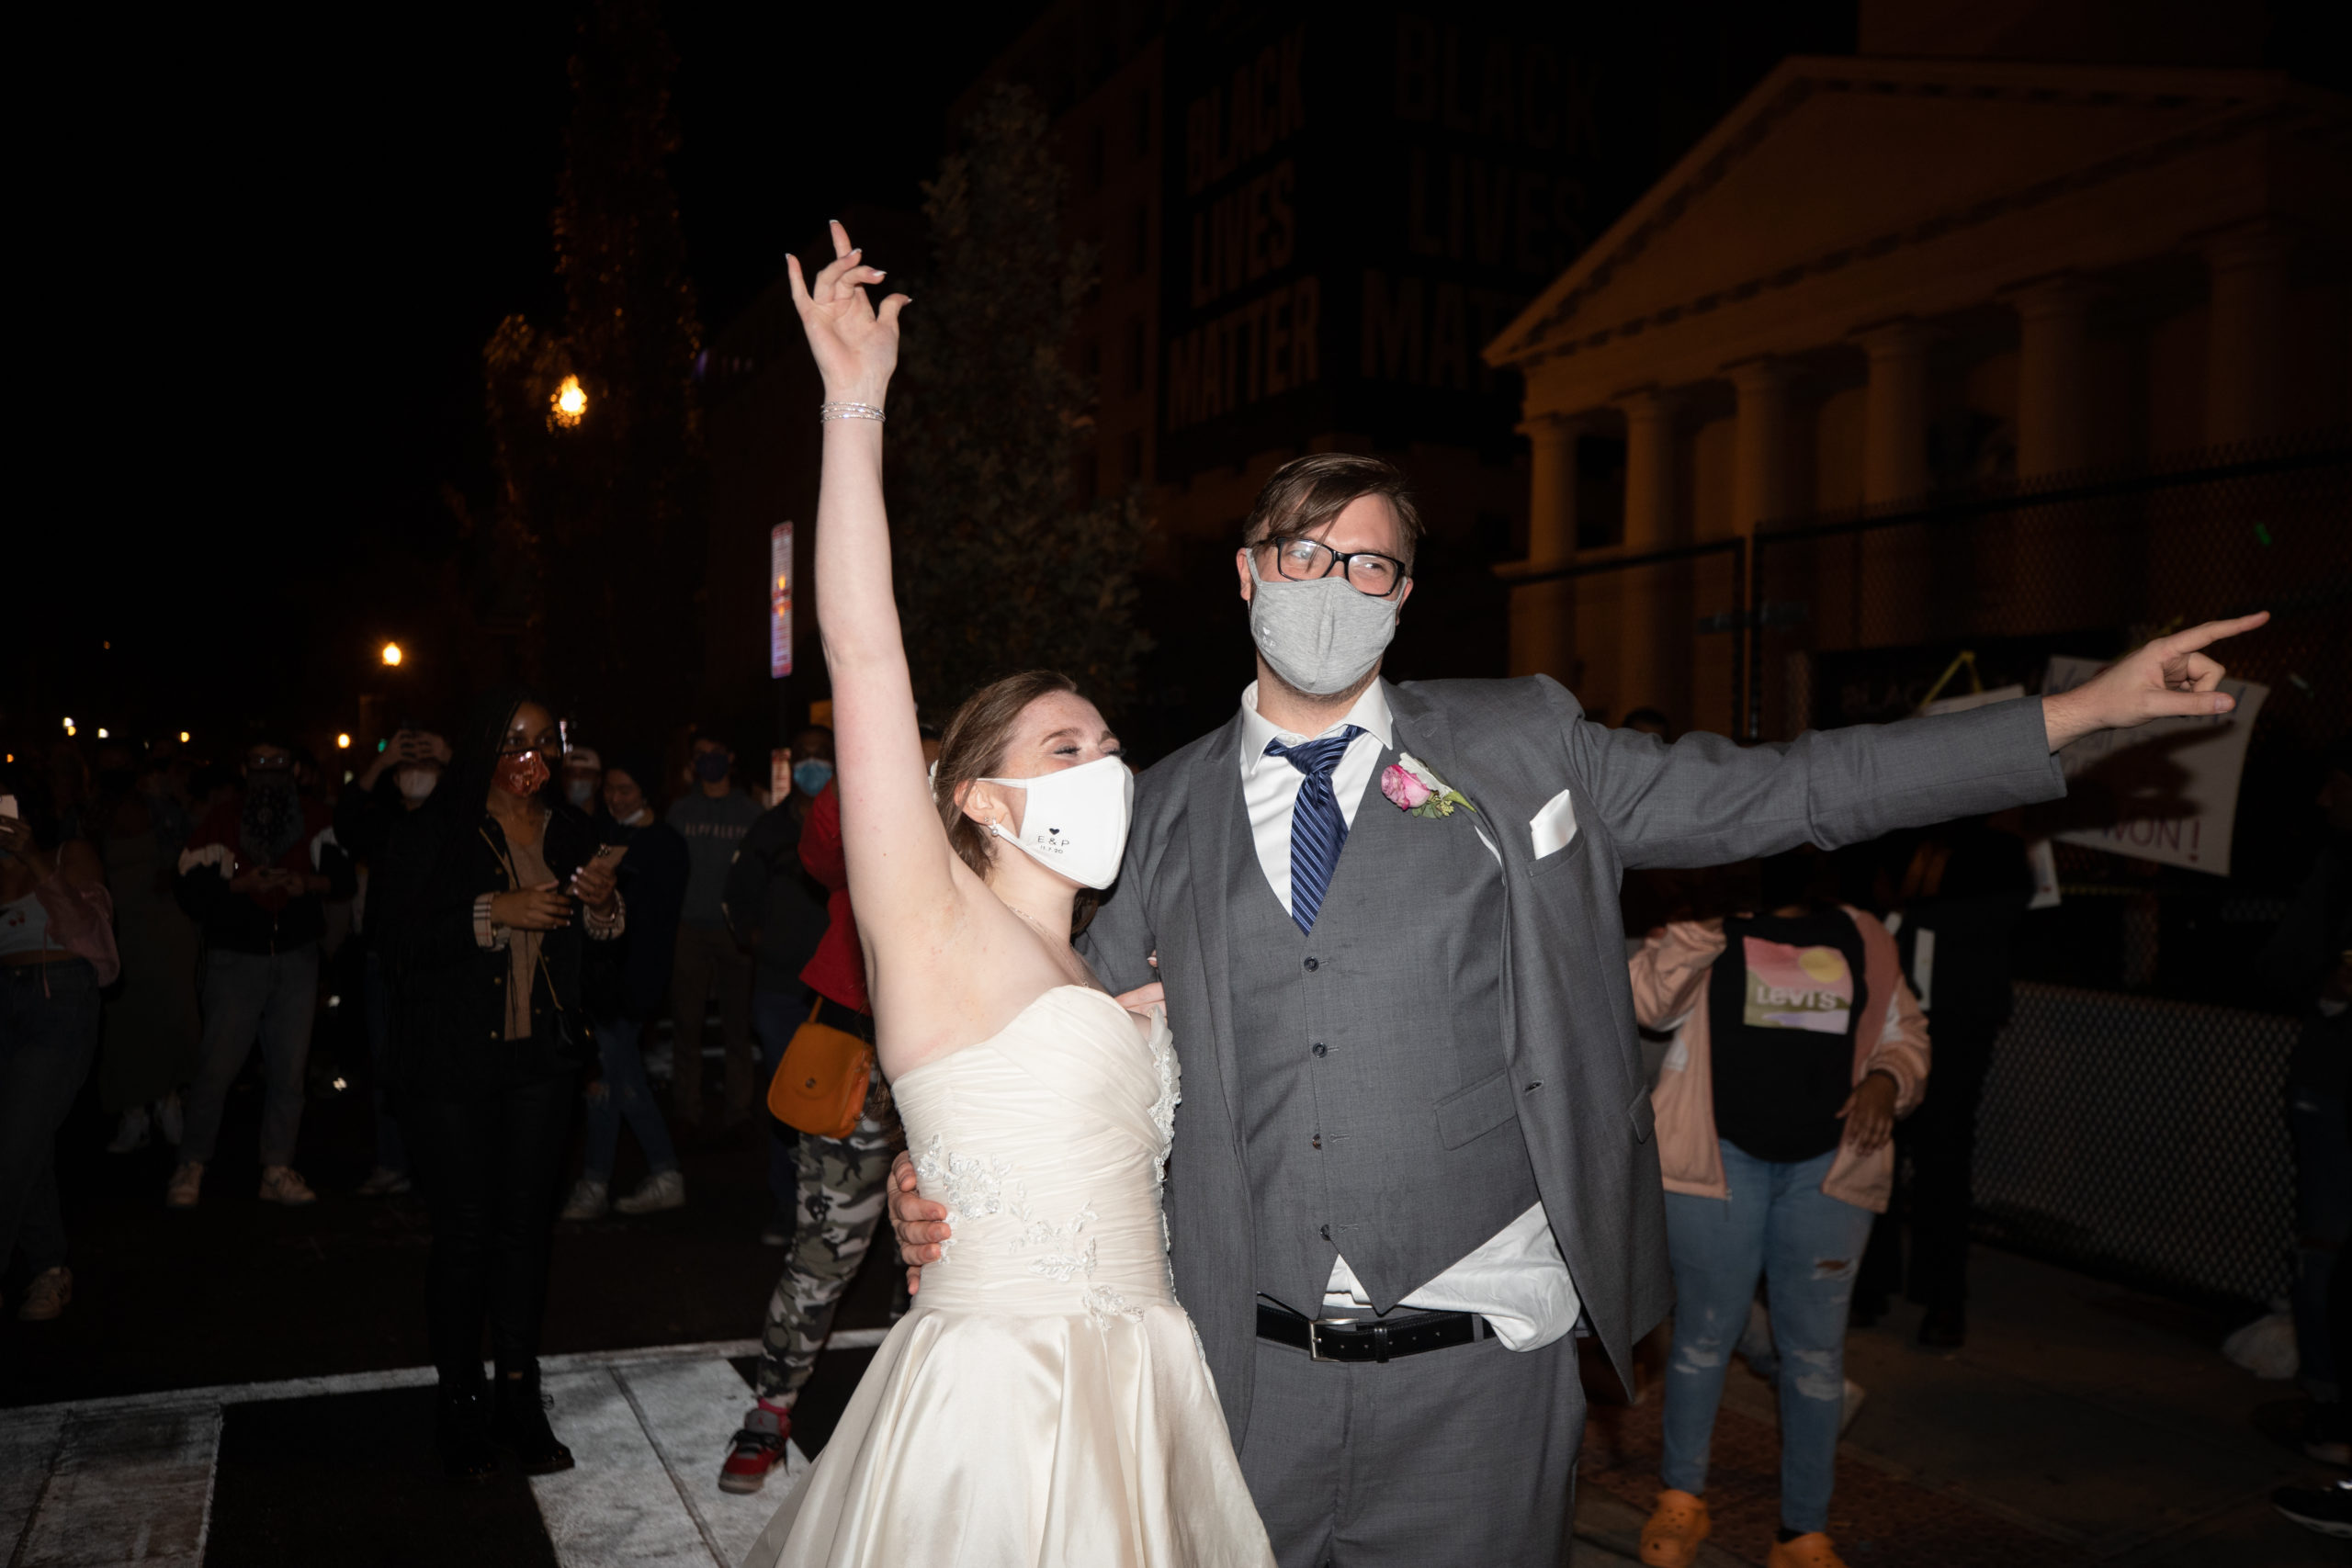 A newlywed couple showed up at Black Lives Matter Plaza early Sunday morning to celebrate the predicted election of Democratic nominee Joe Biden and Kamala Harris, in Washington D.C. on Nov. 8, 2020. (Kaylee Greenlee - Daily Caller News Foundation)